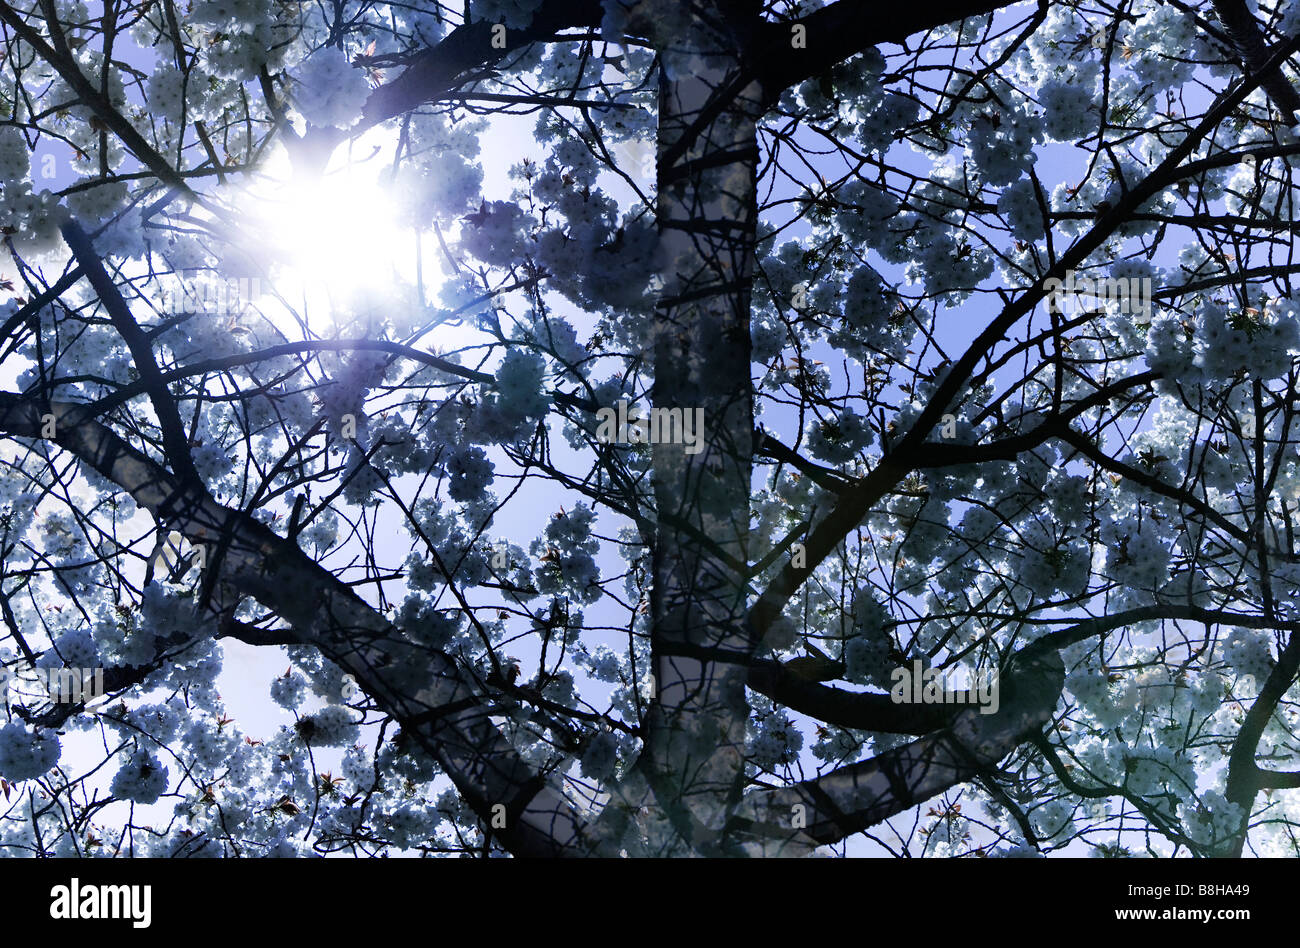 White blossom in spring back lit by the sun - Stock Image